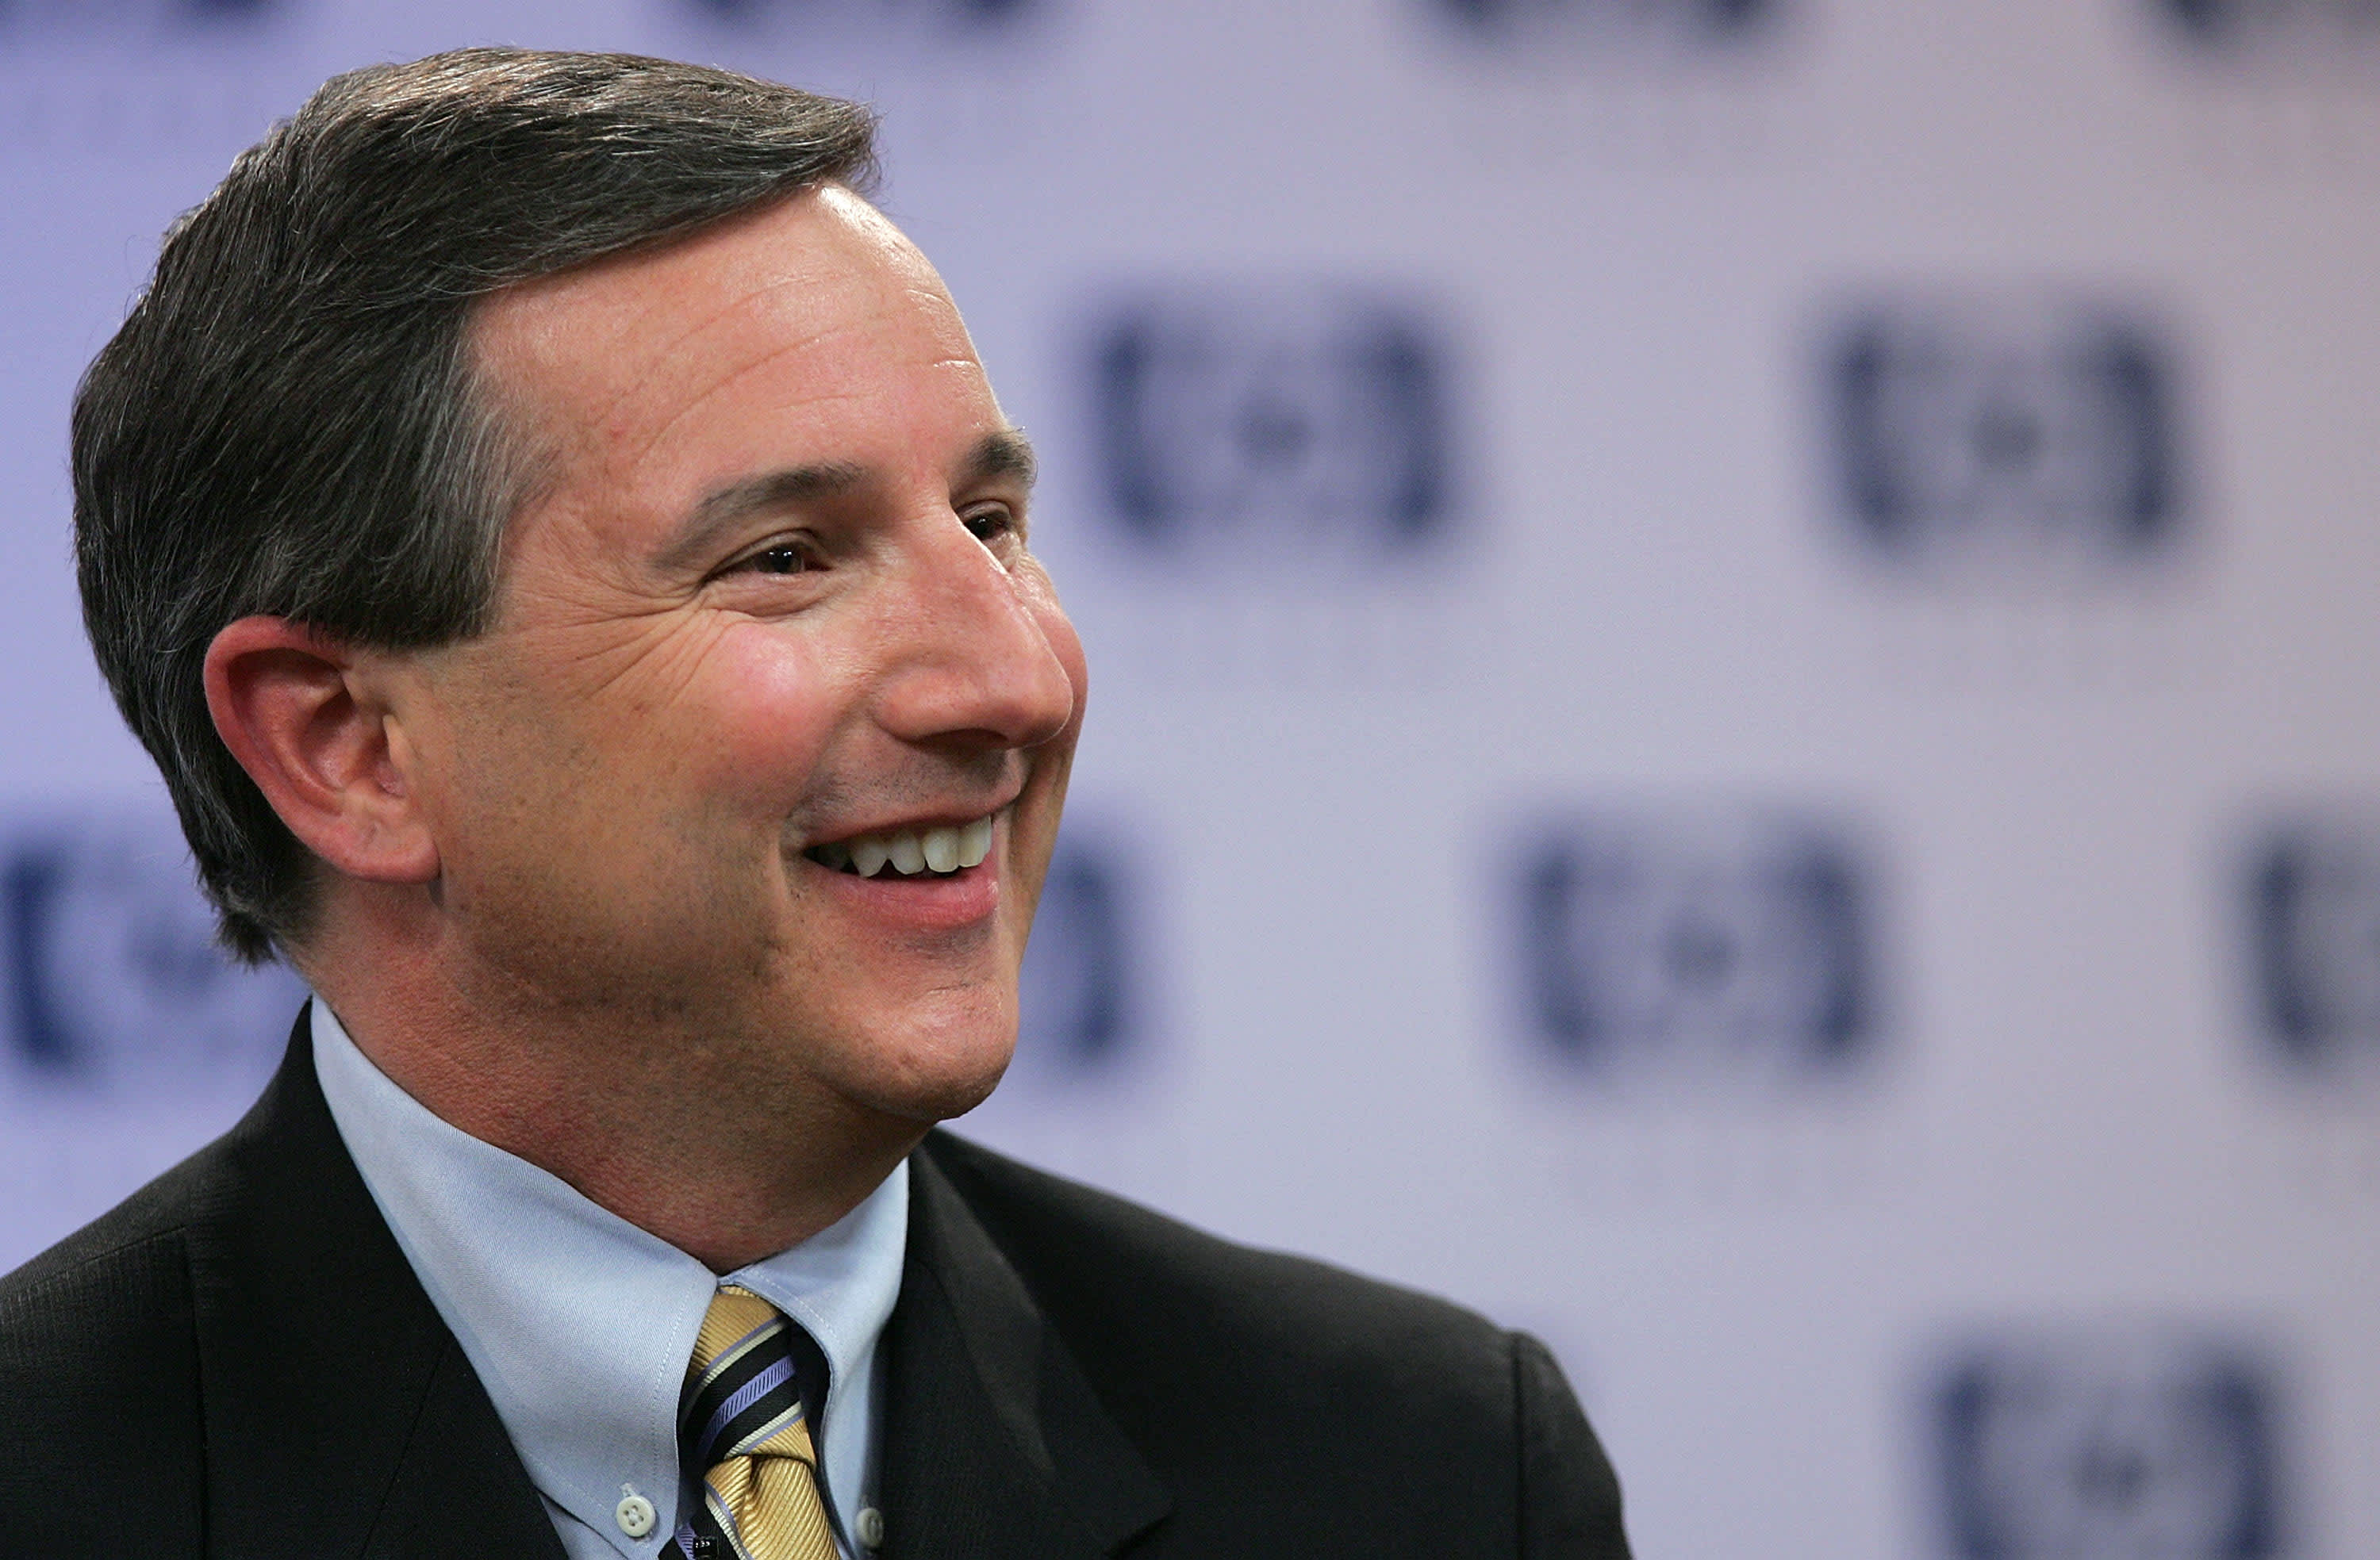 Mark Hurd, co-CEO of Oracle, dies at 62